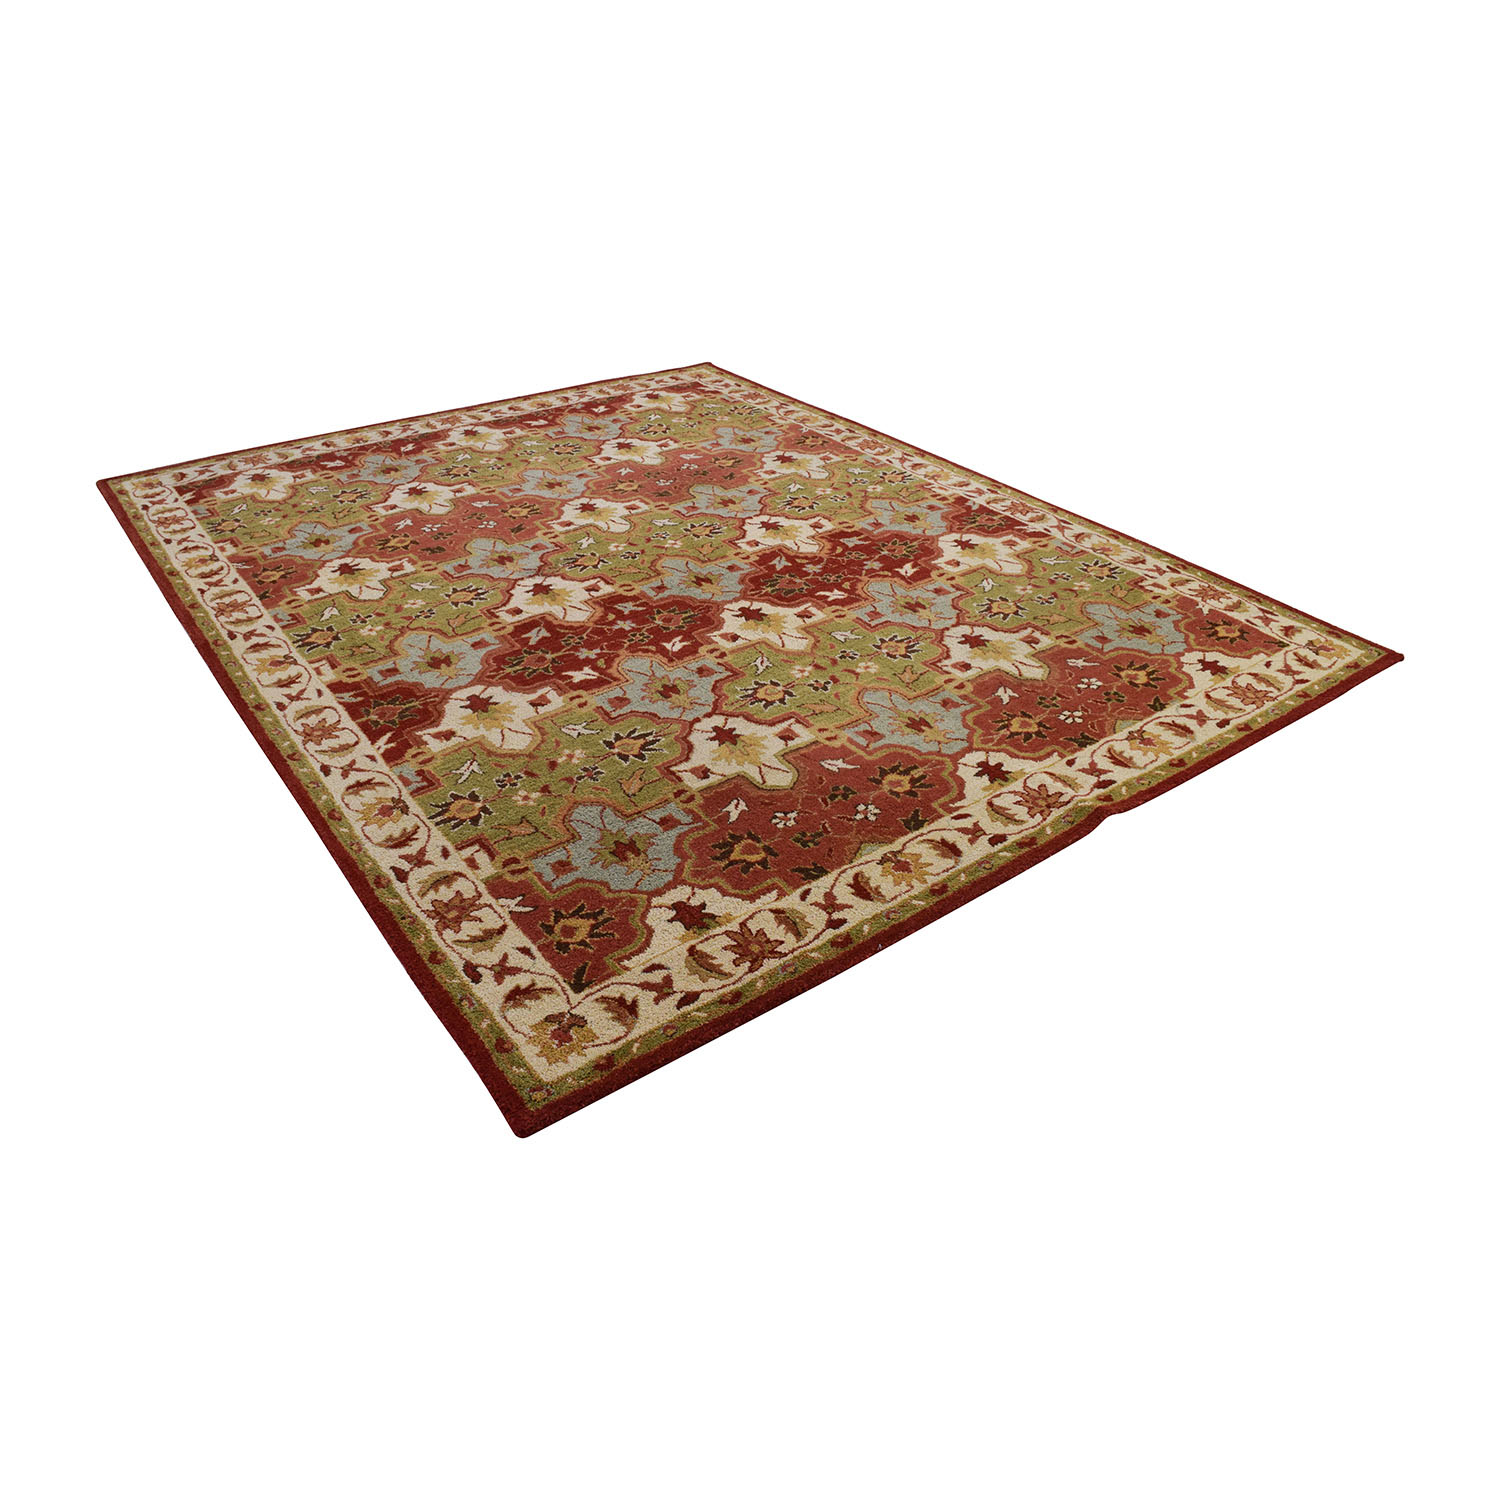 buy Pottery Barn Persian Patterned Rug Pottery Barn